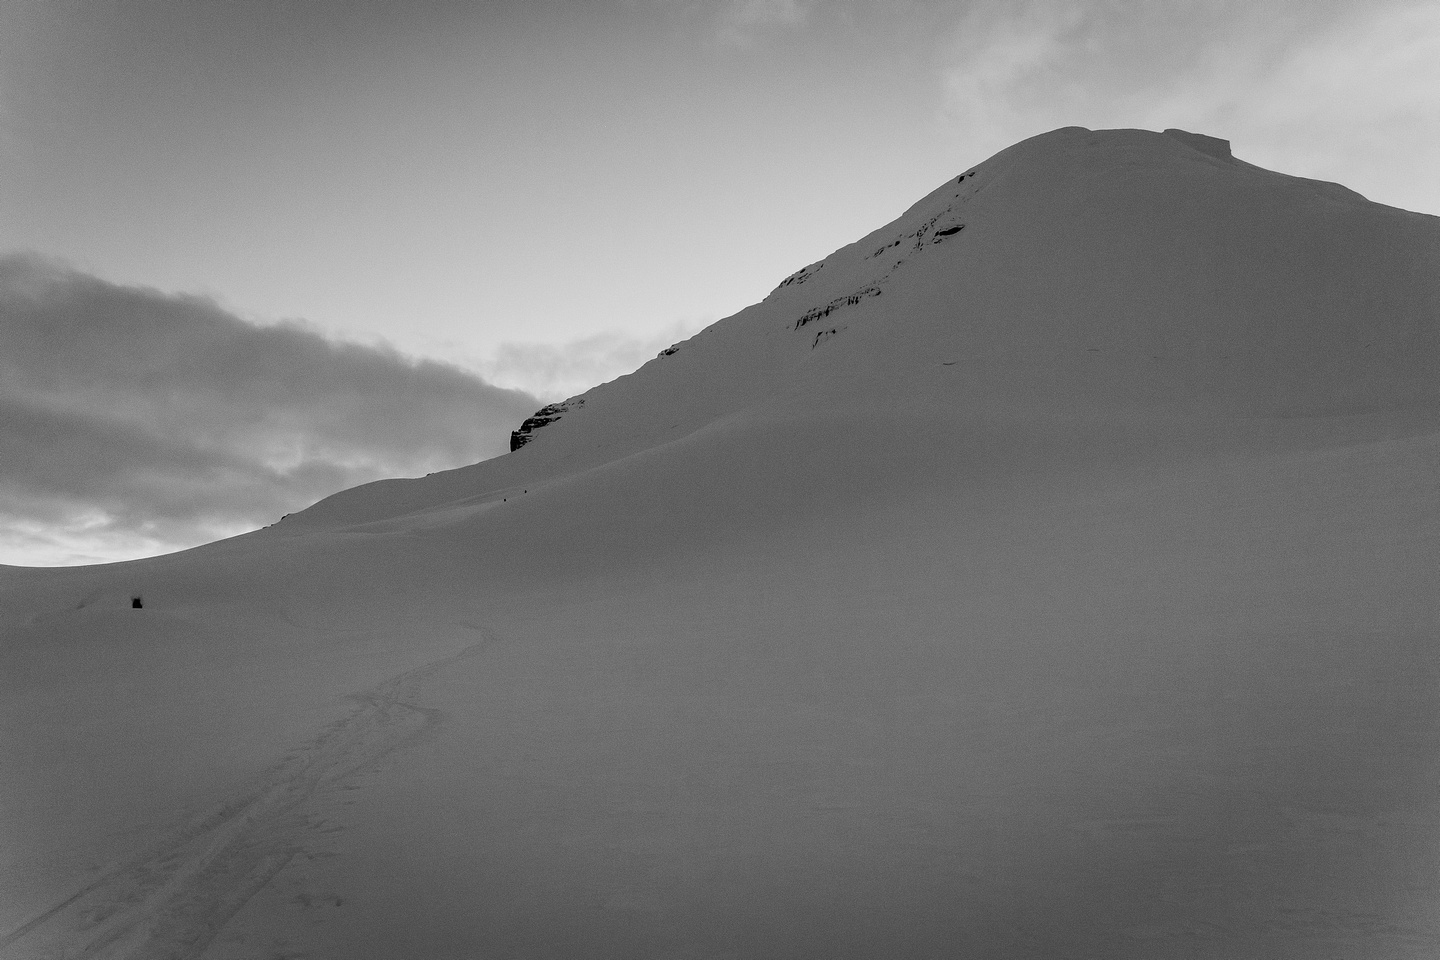 Looking back at Steven and Ben as they ski down from the east face of Columbia in fading light.